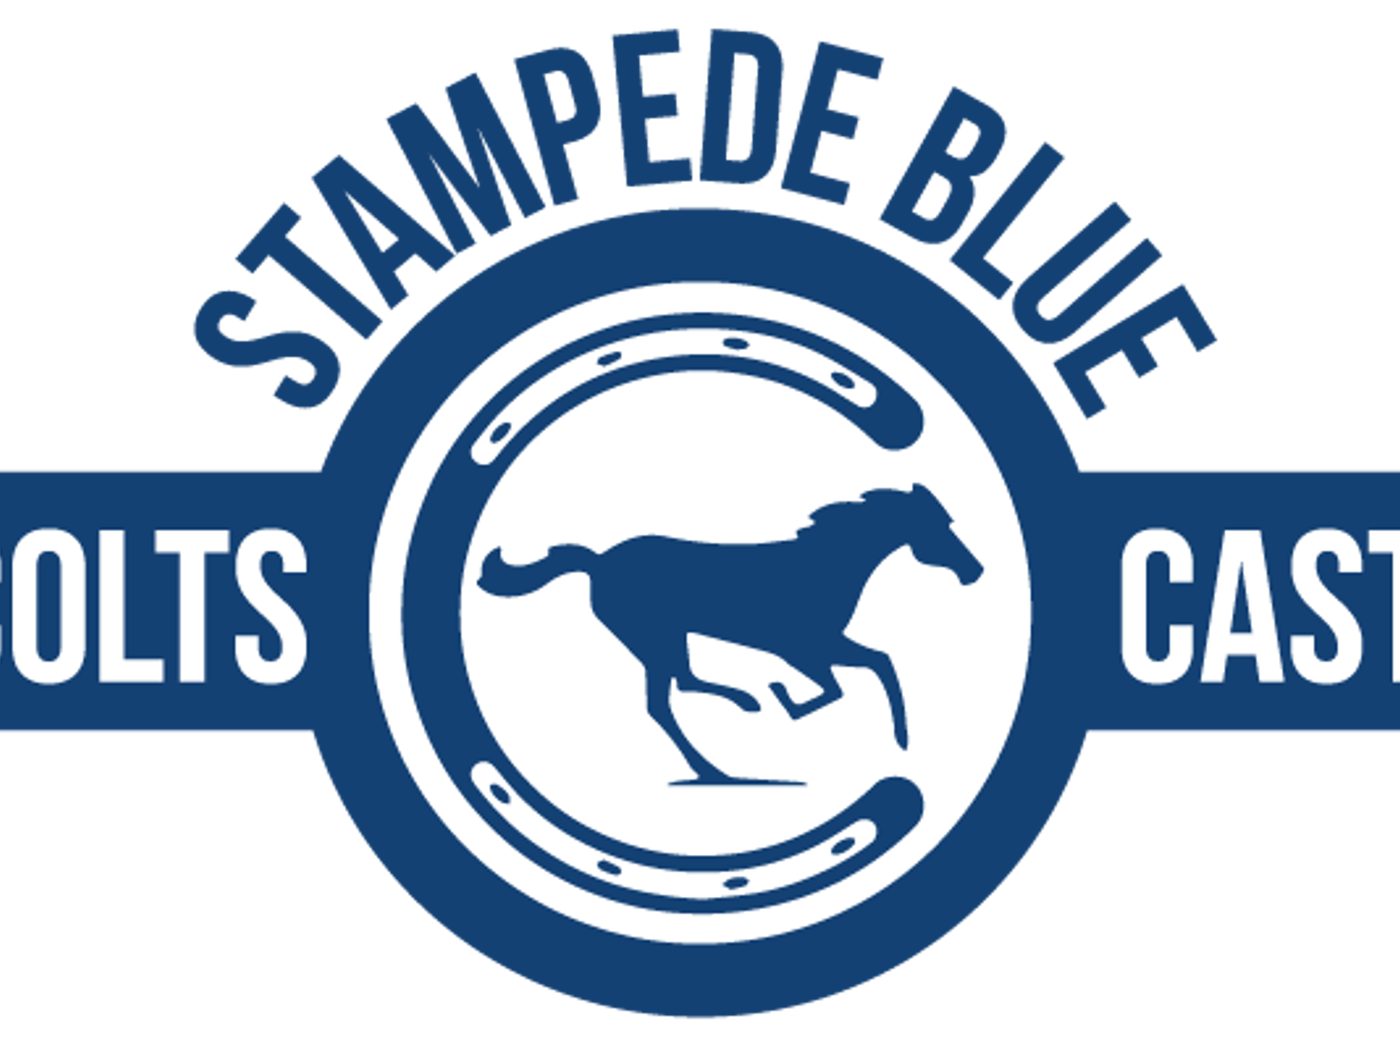 Colts Cast Colts Have Their Hands Full With Steelers In Week 9 Alex Kozora Offers Insight On Steelers Stampede Blue